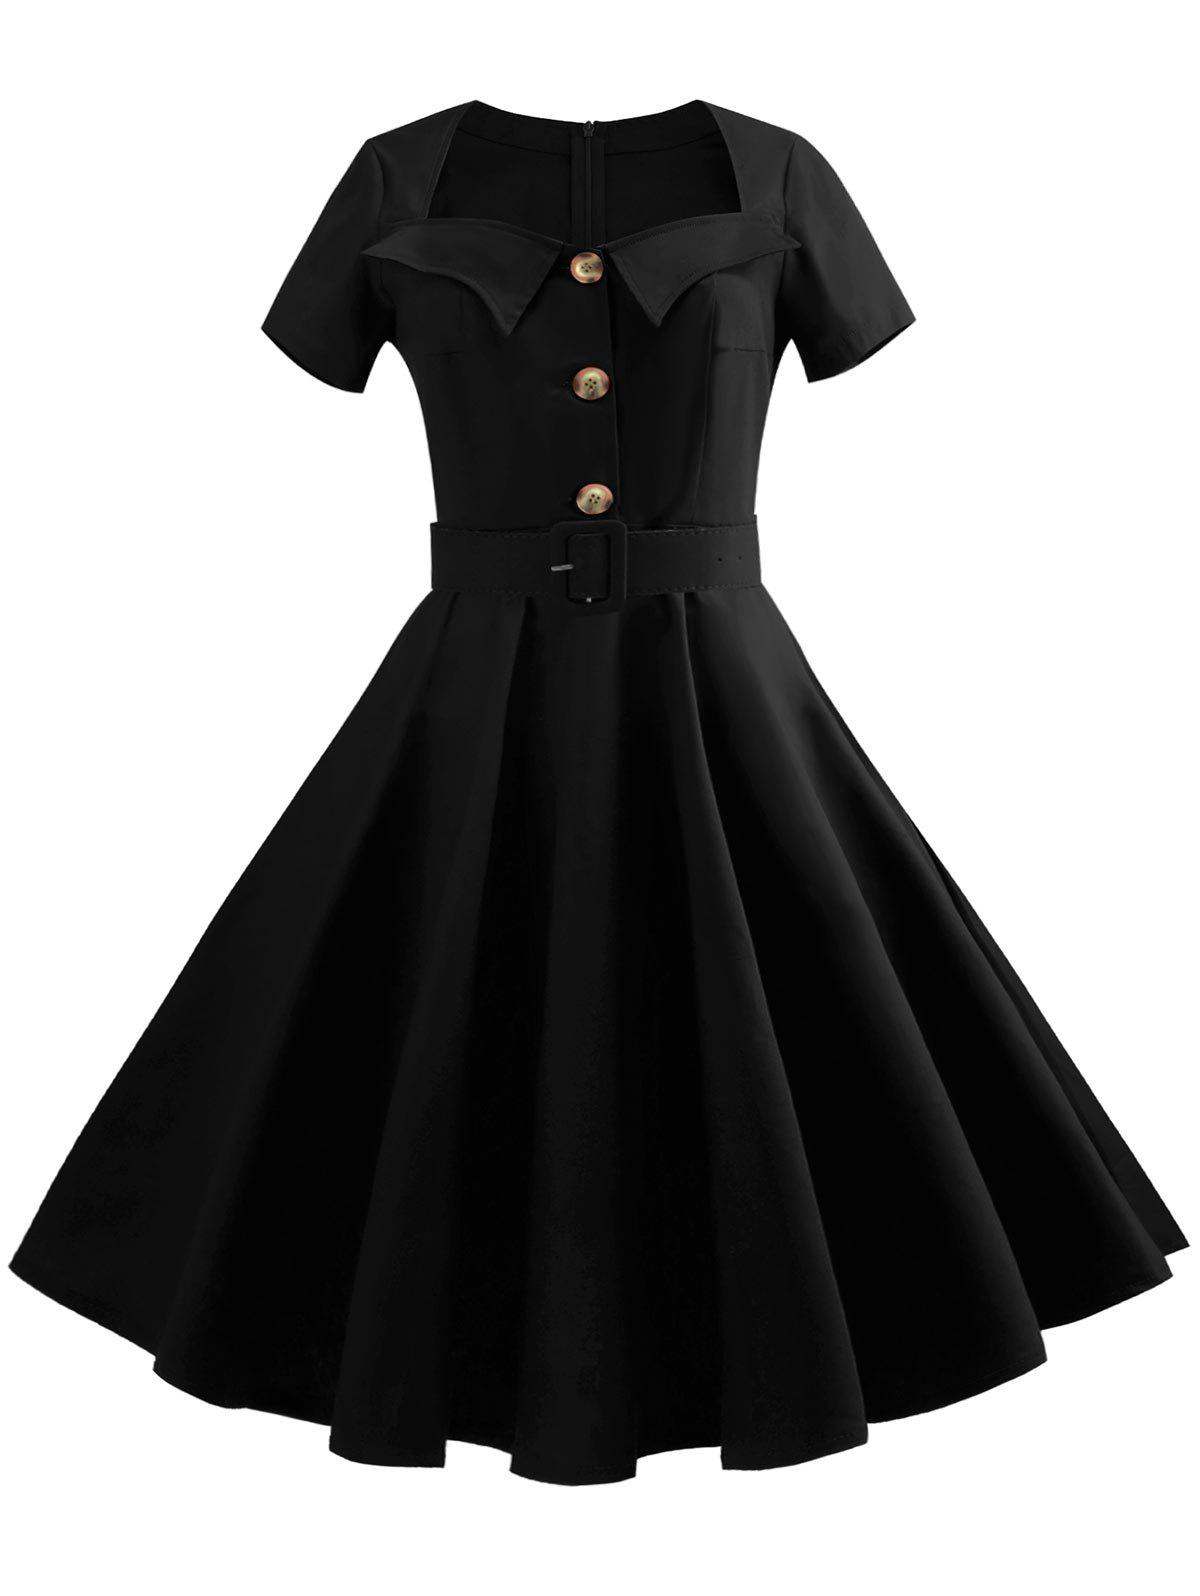 Shops Sweetheart Neck Button Embellished Vintage Dress